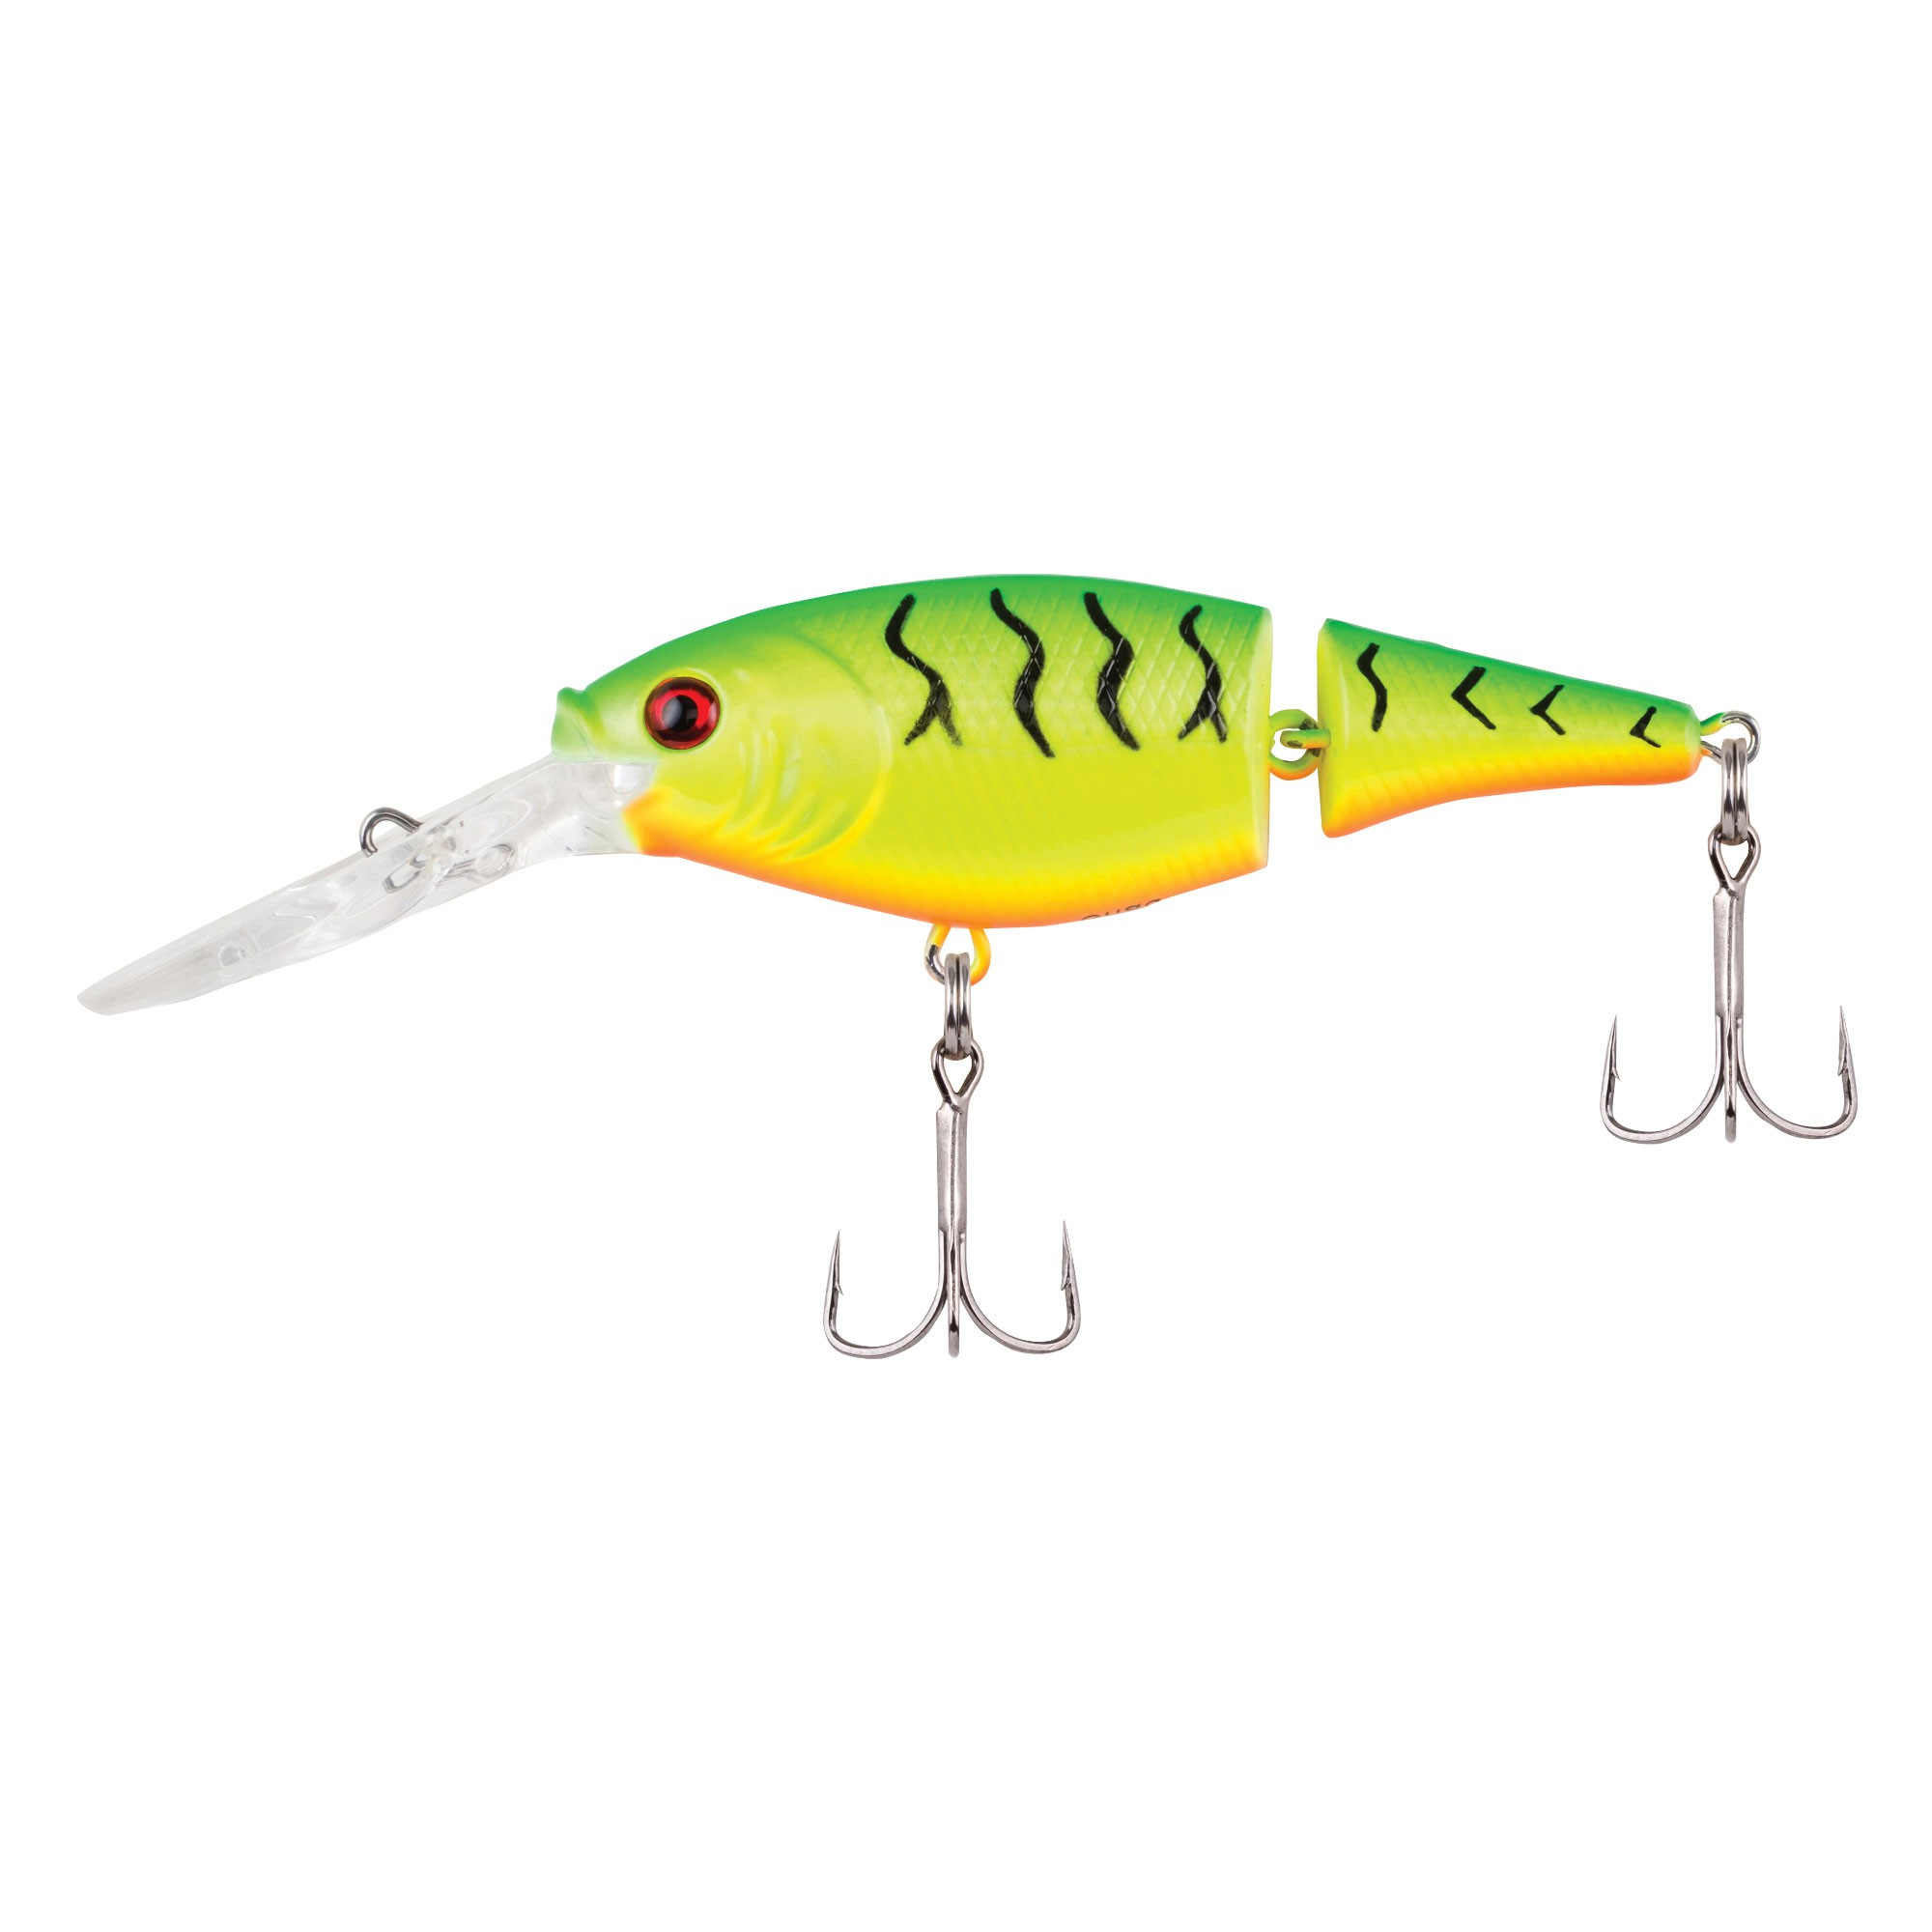 Berkley Flicker Shad Jointed firetiger